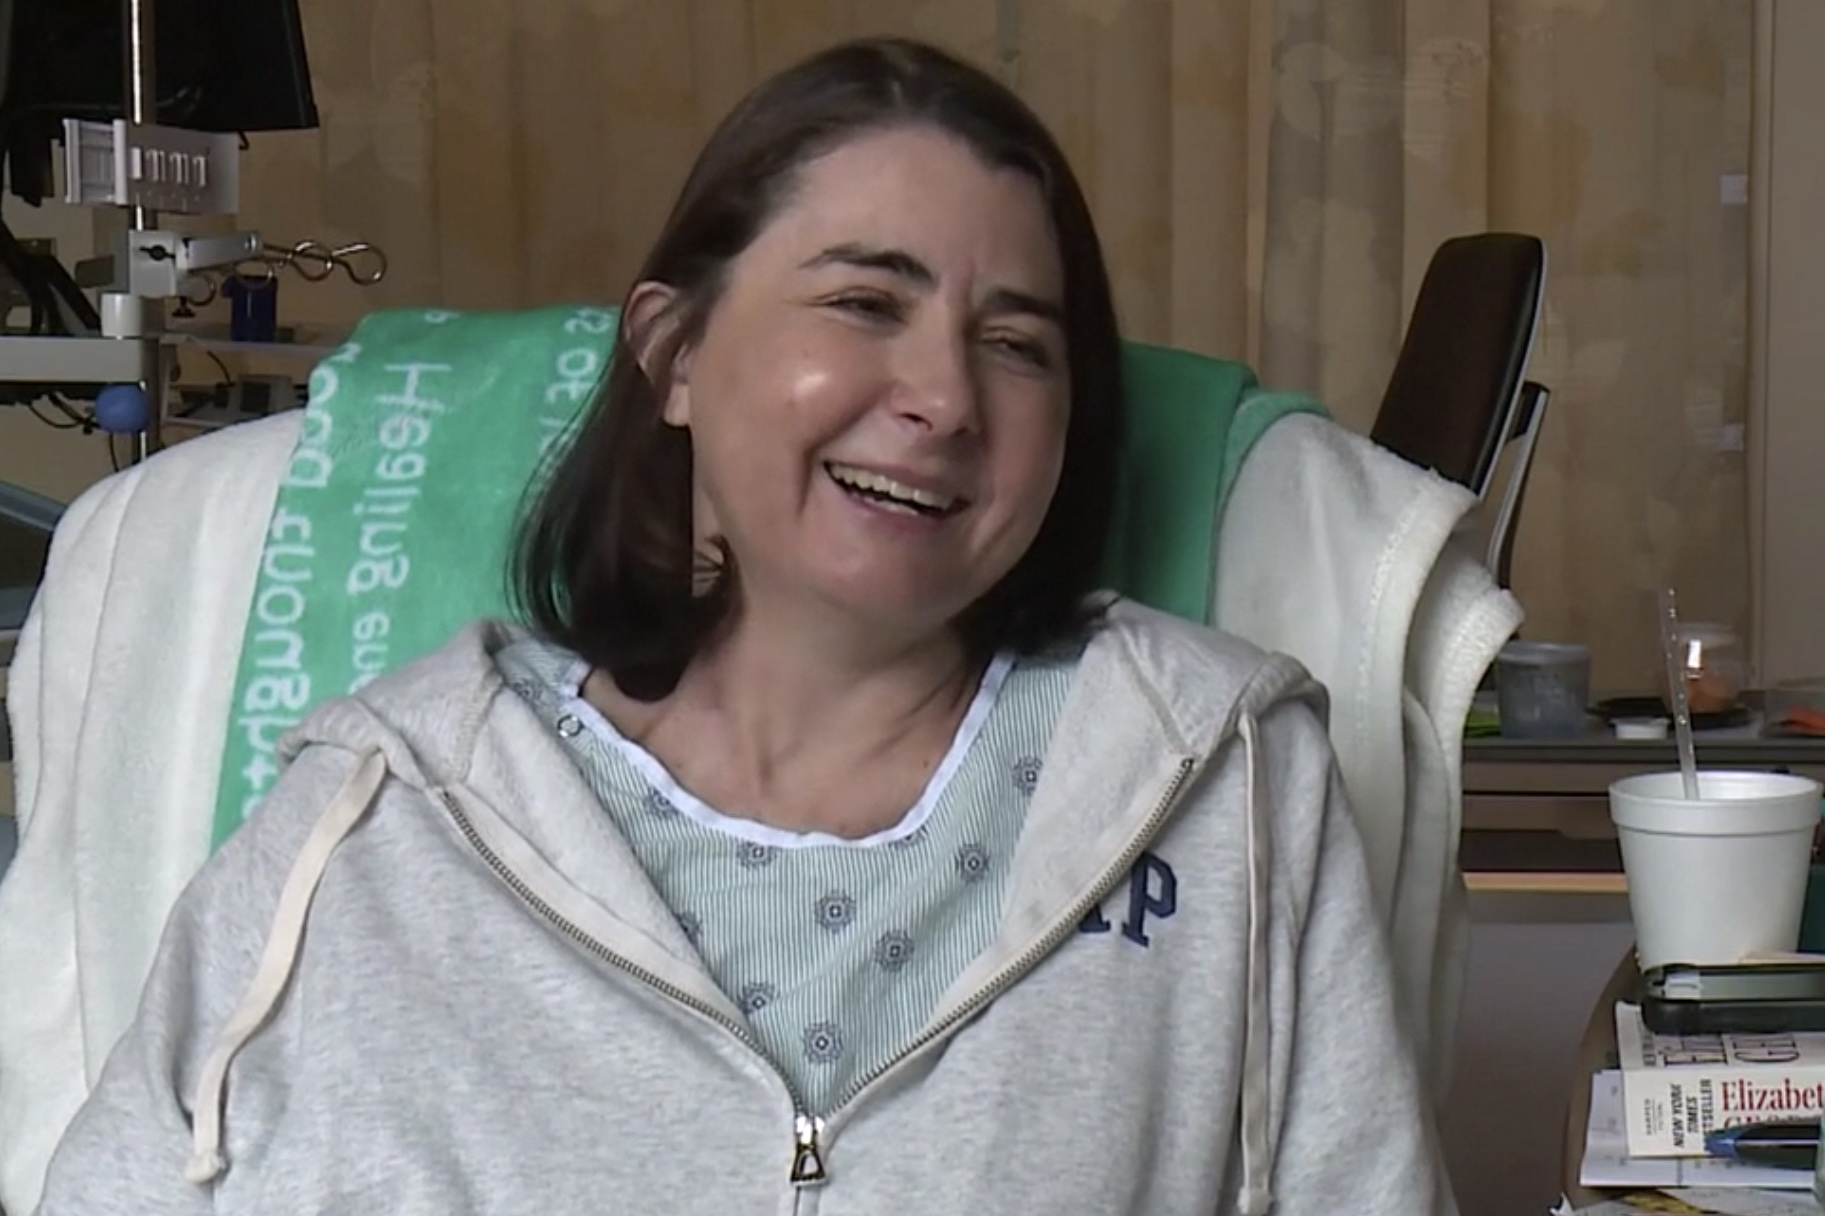 'Mandy got her change of heart:' Bellaire leader Nathan's husband shares transplant news